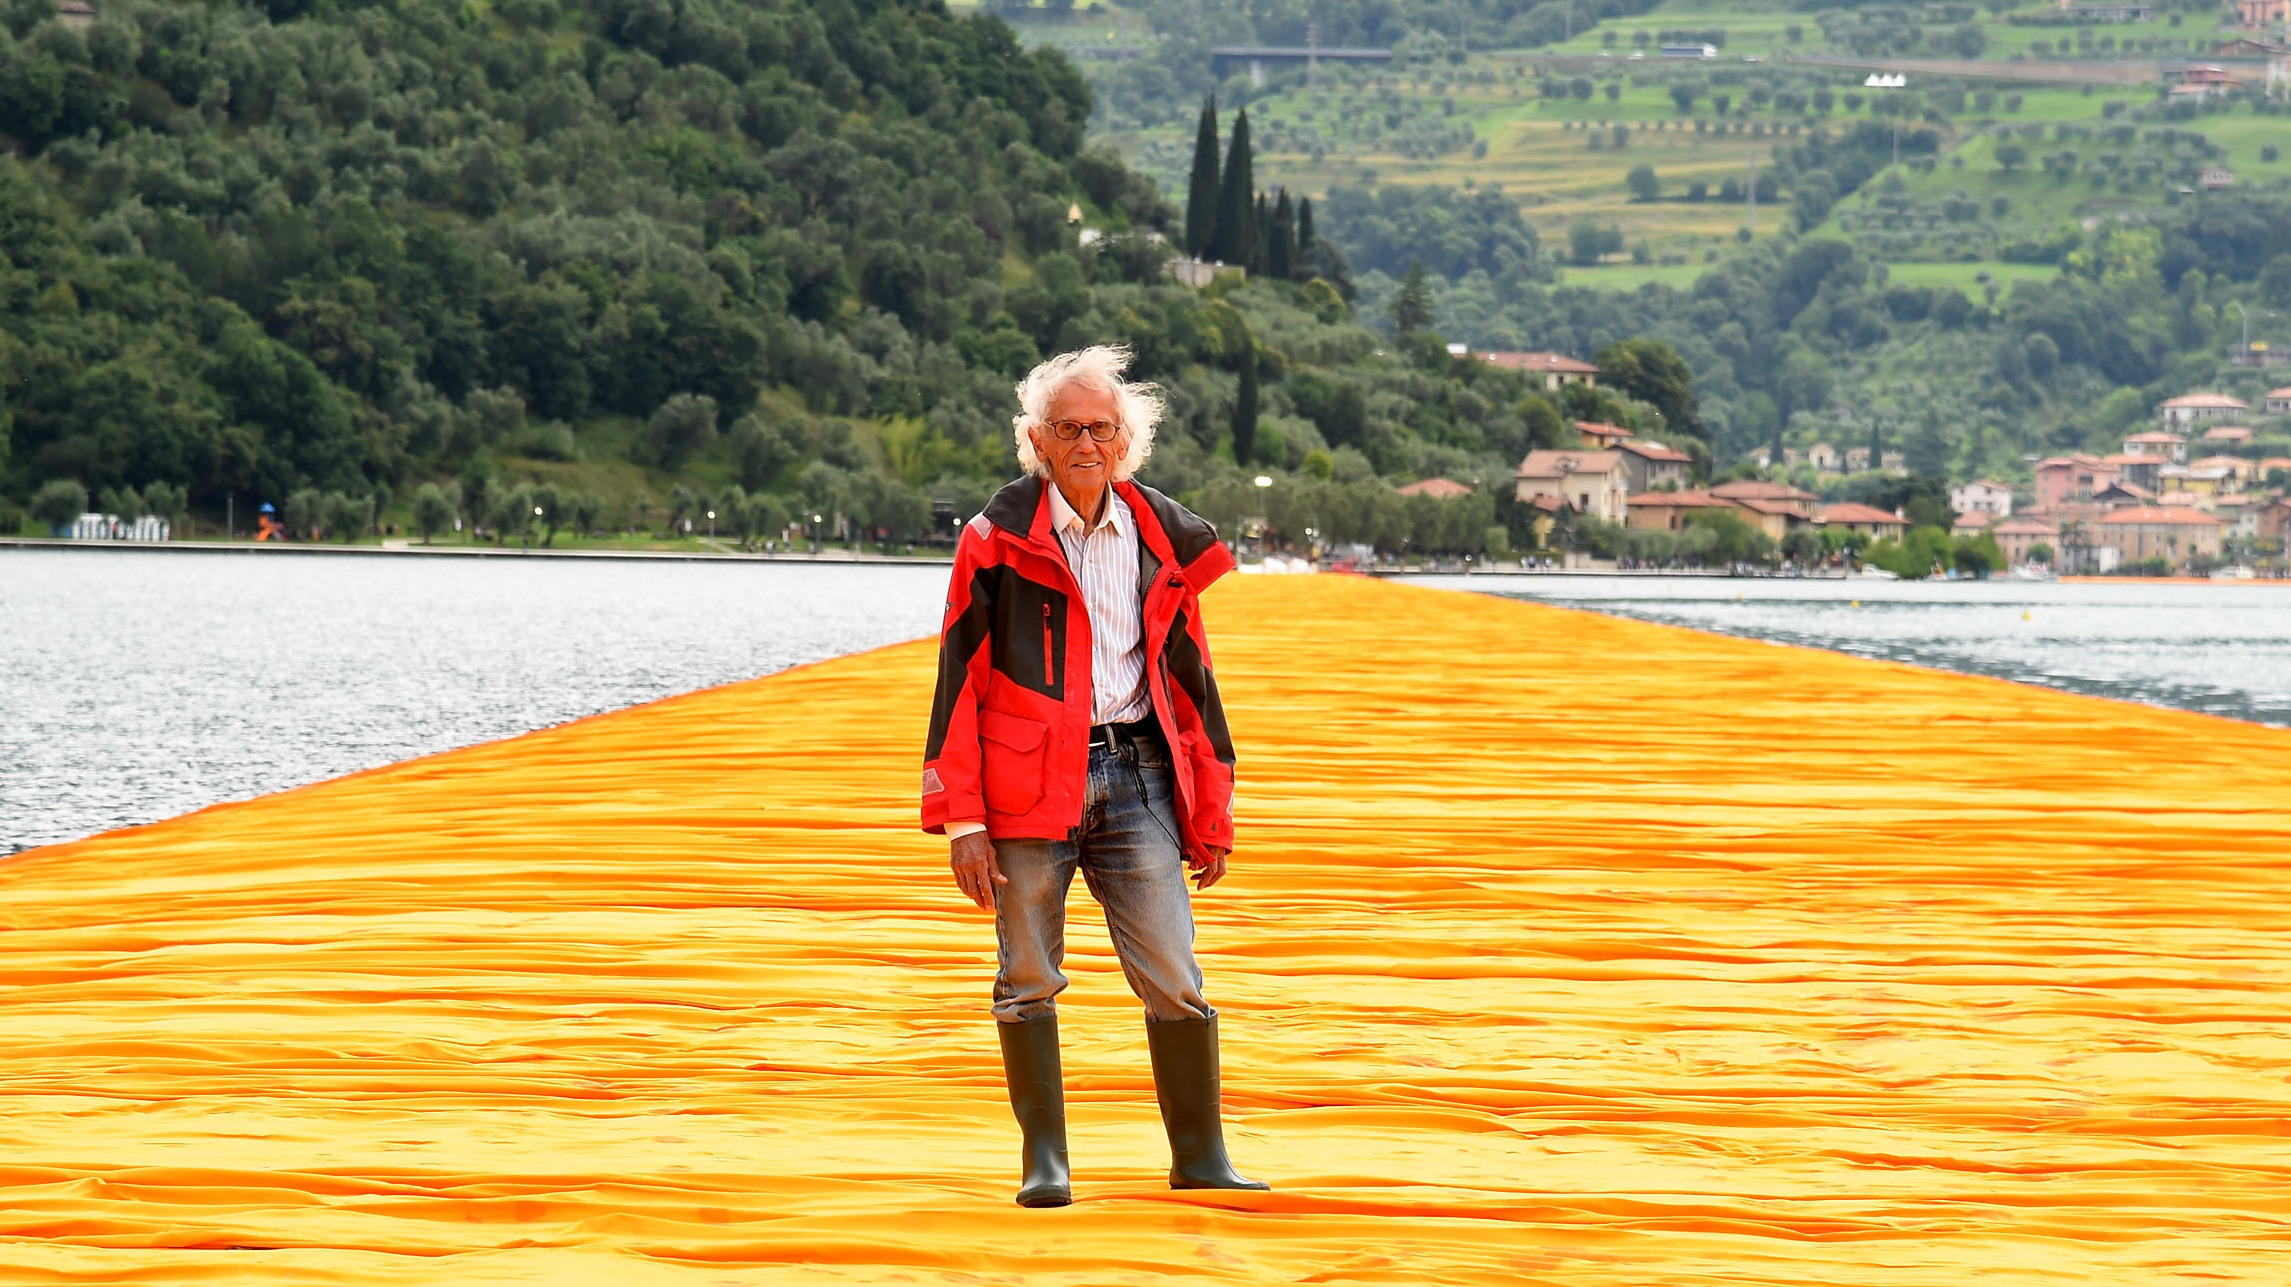 Christo, Bulgarian Artist Who Wrapped Landmarks, Dies at 84